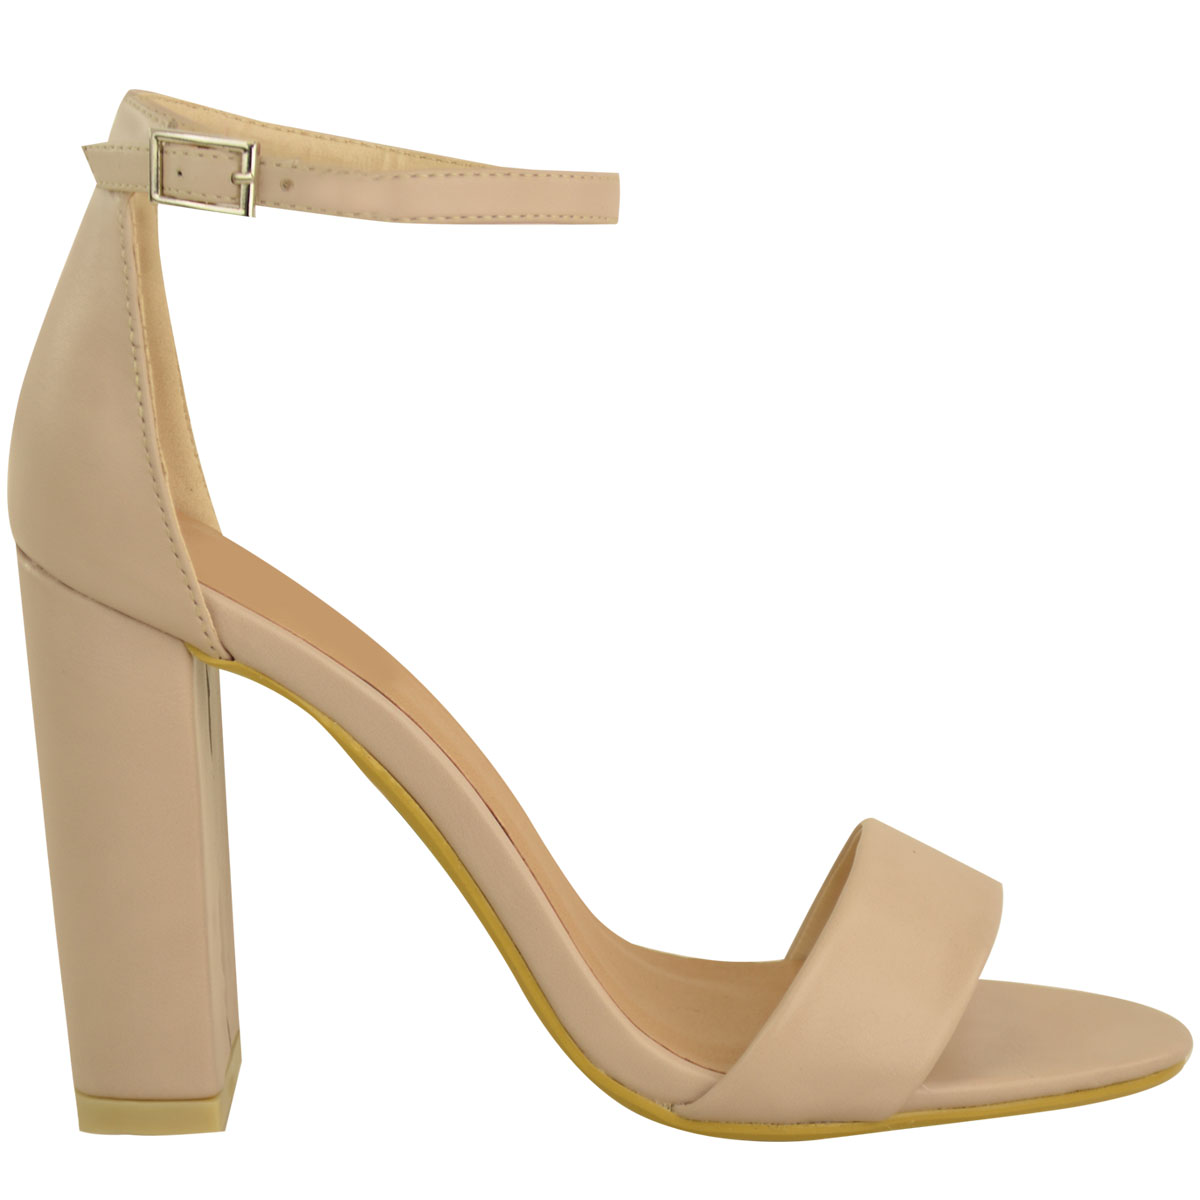 Womens-Strappy-Sandals-Block-Mid-High-Heel-Ladies-Open-Toe-Evening-Party-Shoes